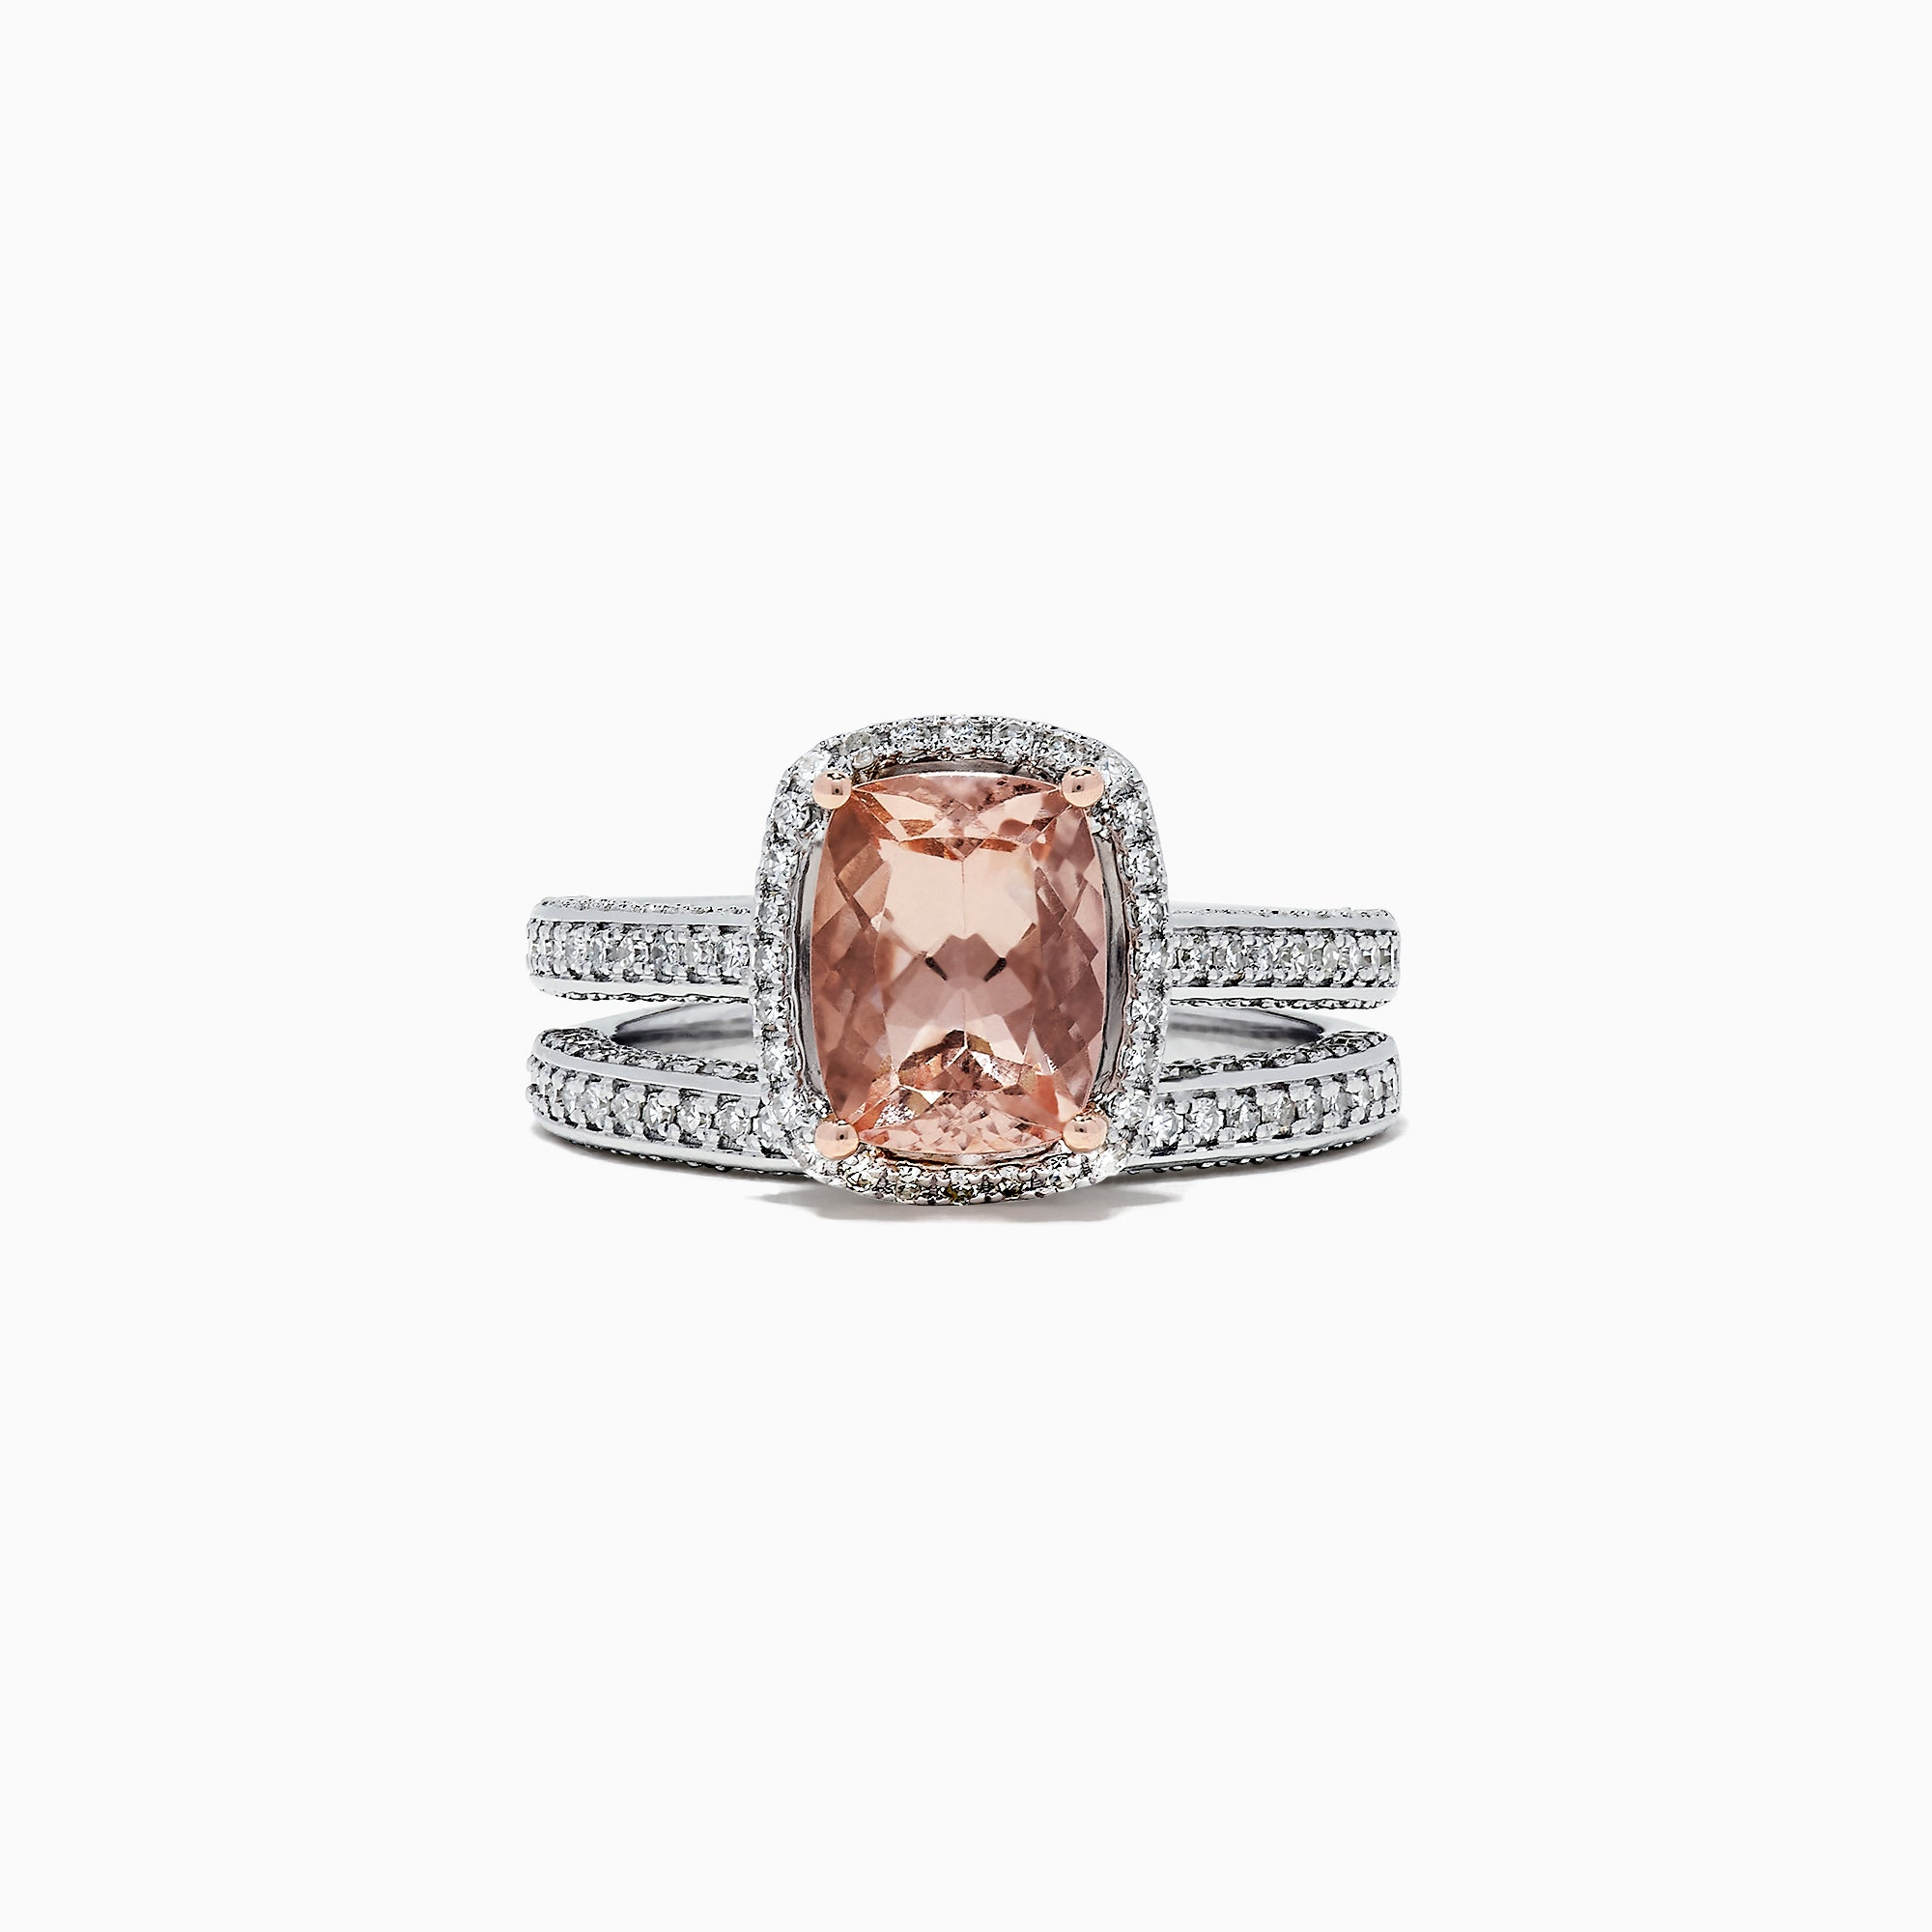 Effy Blush 14K White Gold Morganite and Diamond Ring Set, 3.04 TCW